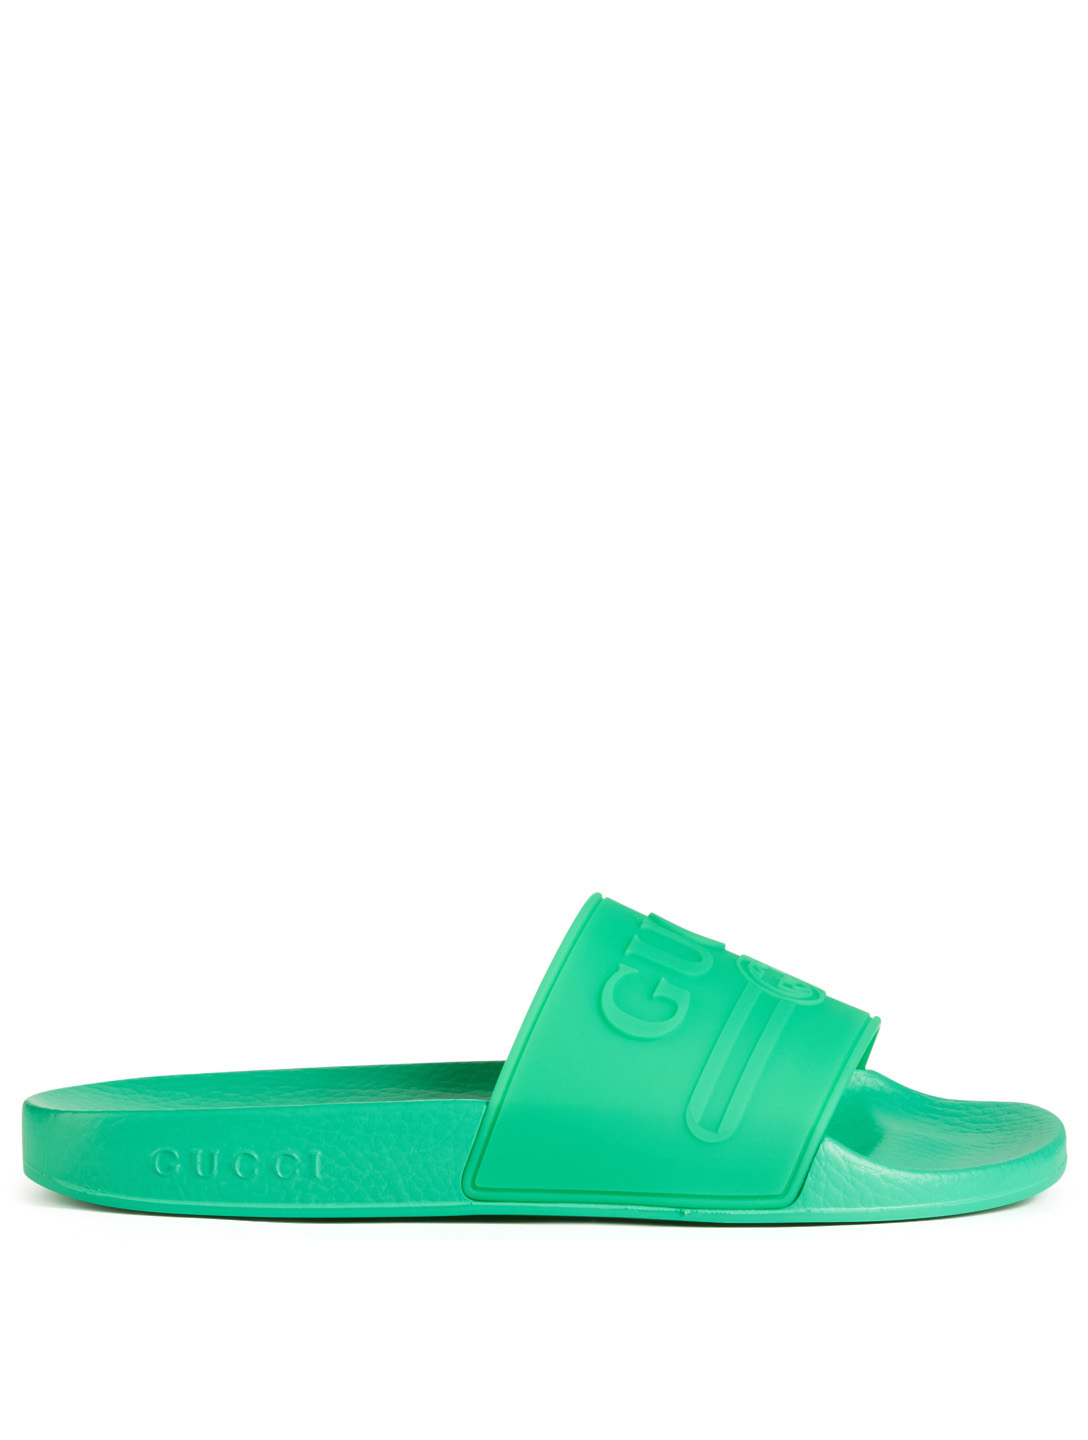 6fc23bff3 GUCCI Pursuit Pool Slides With Embossed Logo Womens Green ...